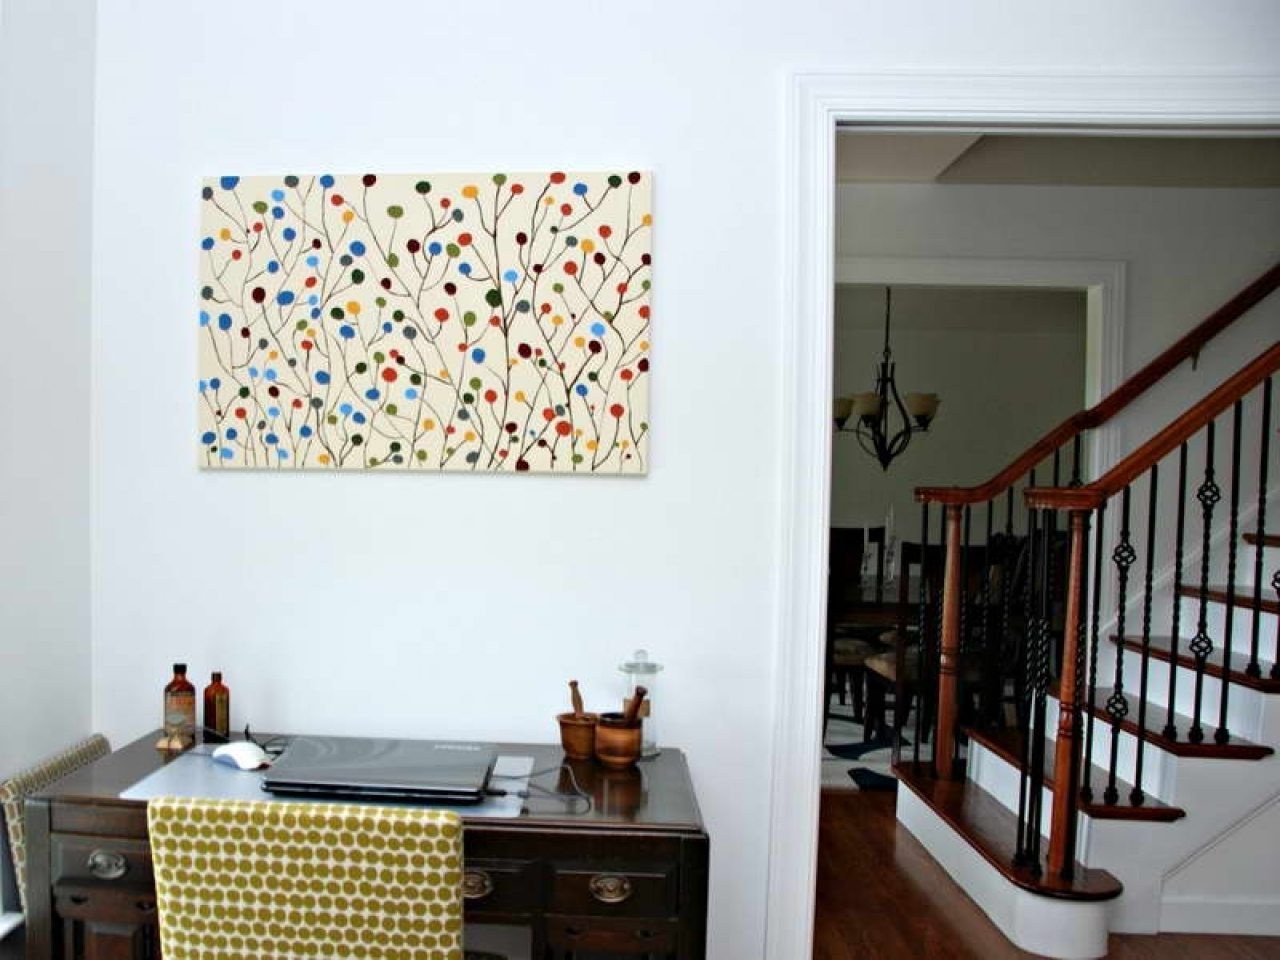 Popular Homemade Wall Art In Wall Table Ideas, Diy Canvas Wall Art Ideas Homemade  Wall